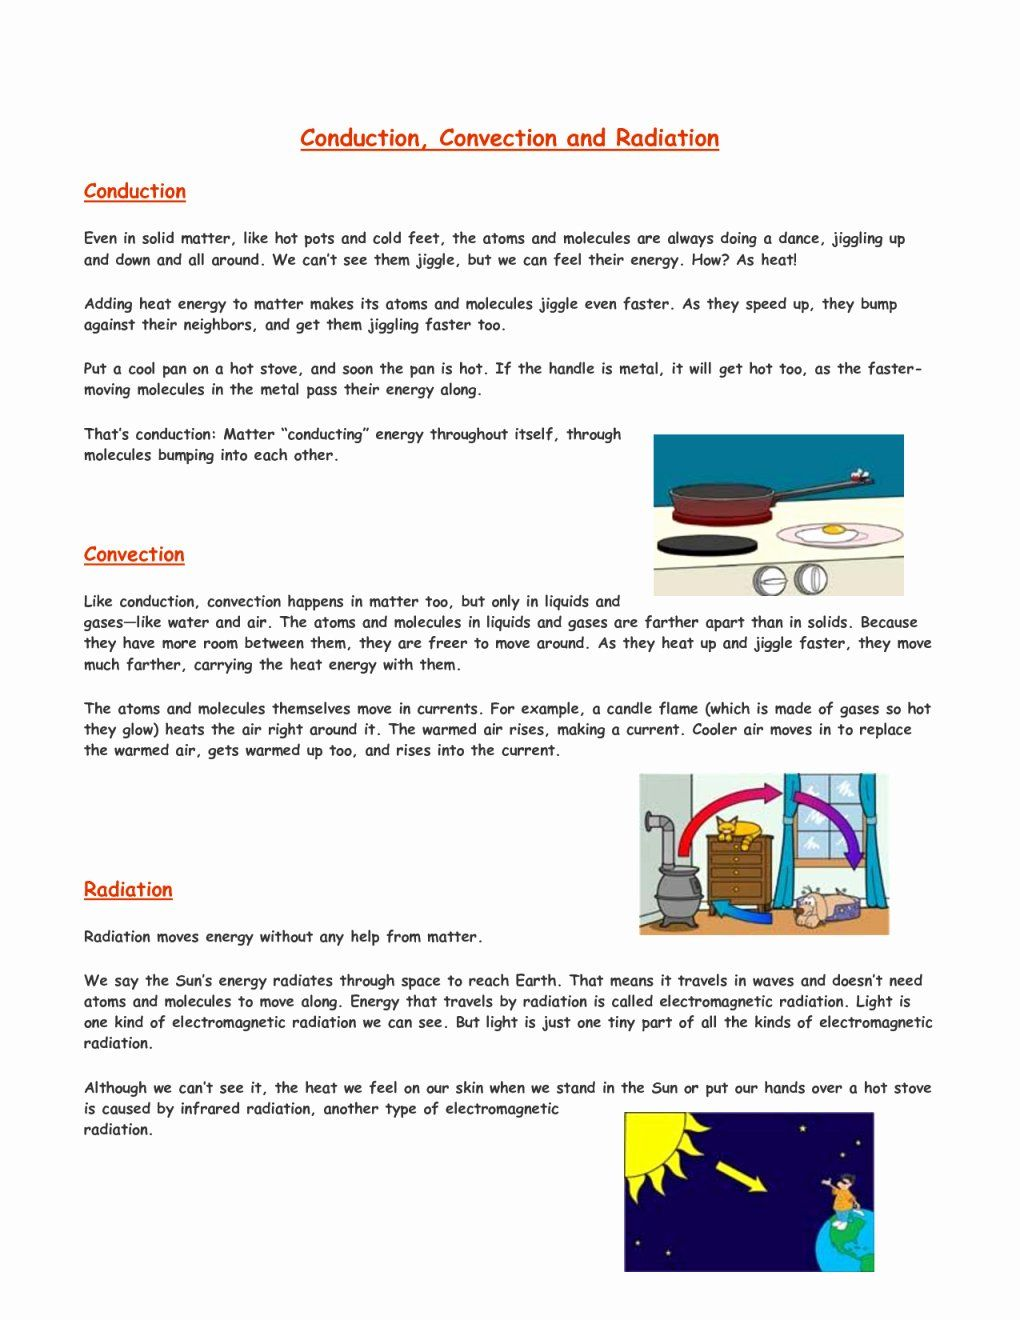 Anger Management Worksheet For Teens Luxury The 25 Best Anger Management Worksheets Ideas On Che Conduction Convection Radiation Conduction 5th Grade Science